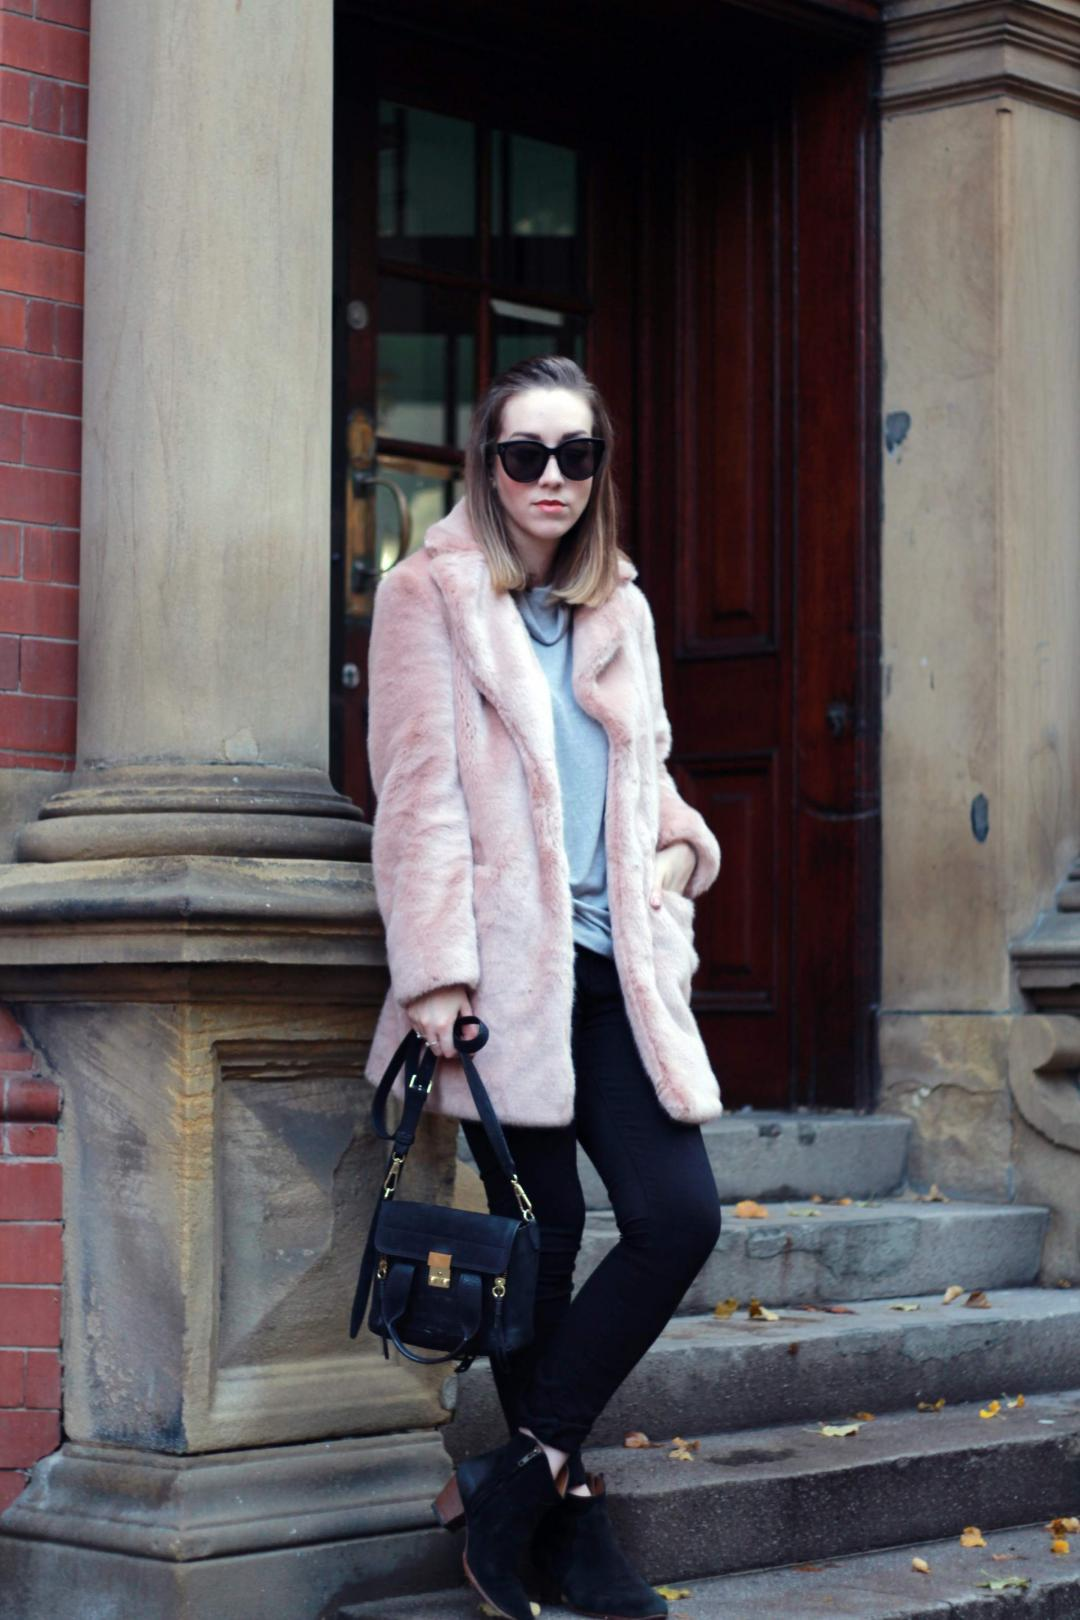 reiss-alba-pink-faux-fur-coat-phillip-lim-pashli-isabel-marant-dicker-boots-street-style-2